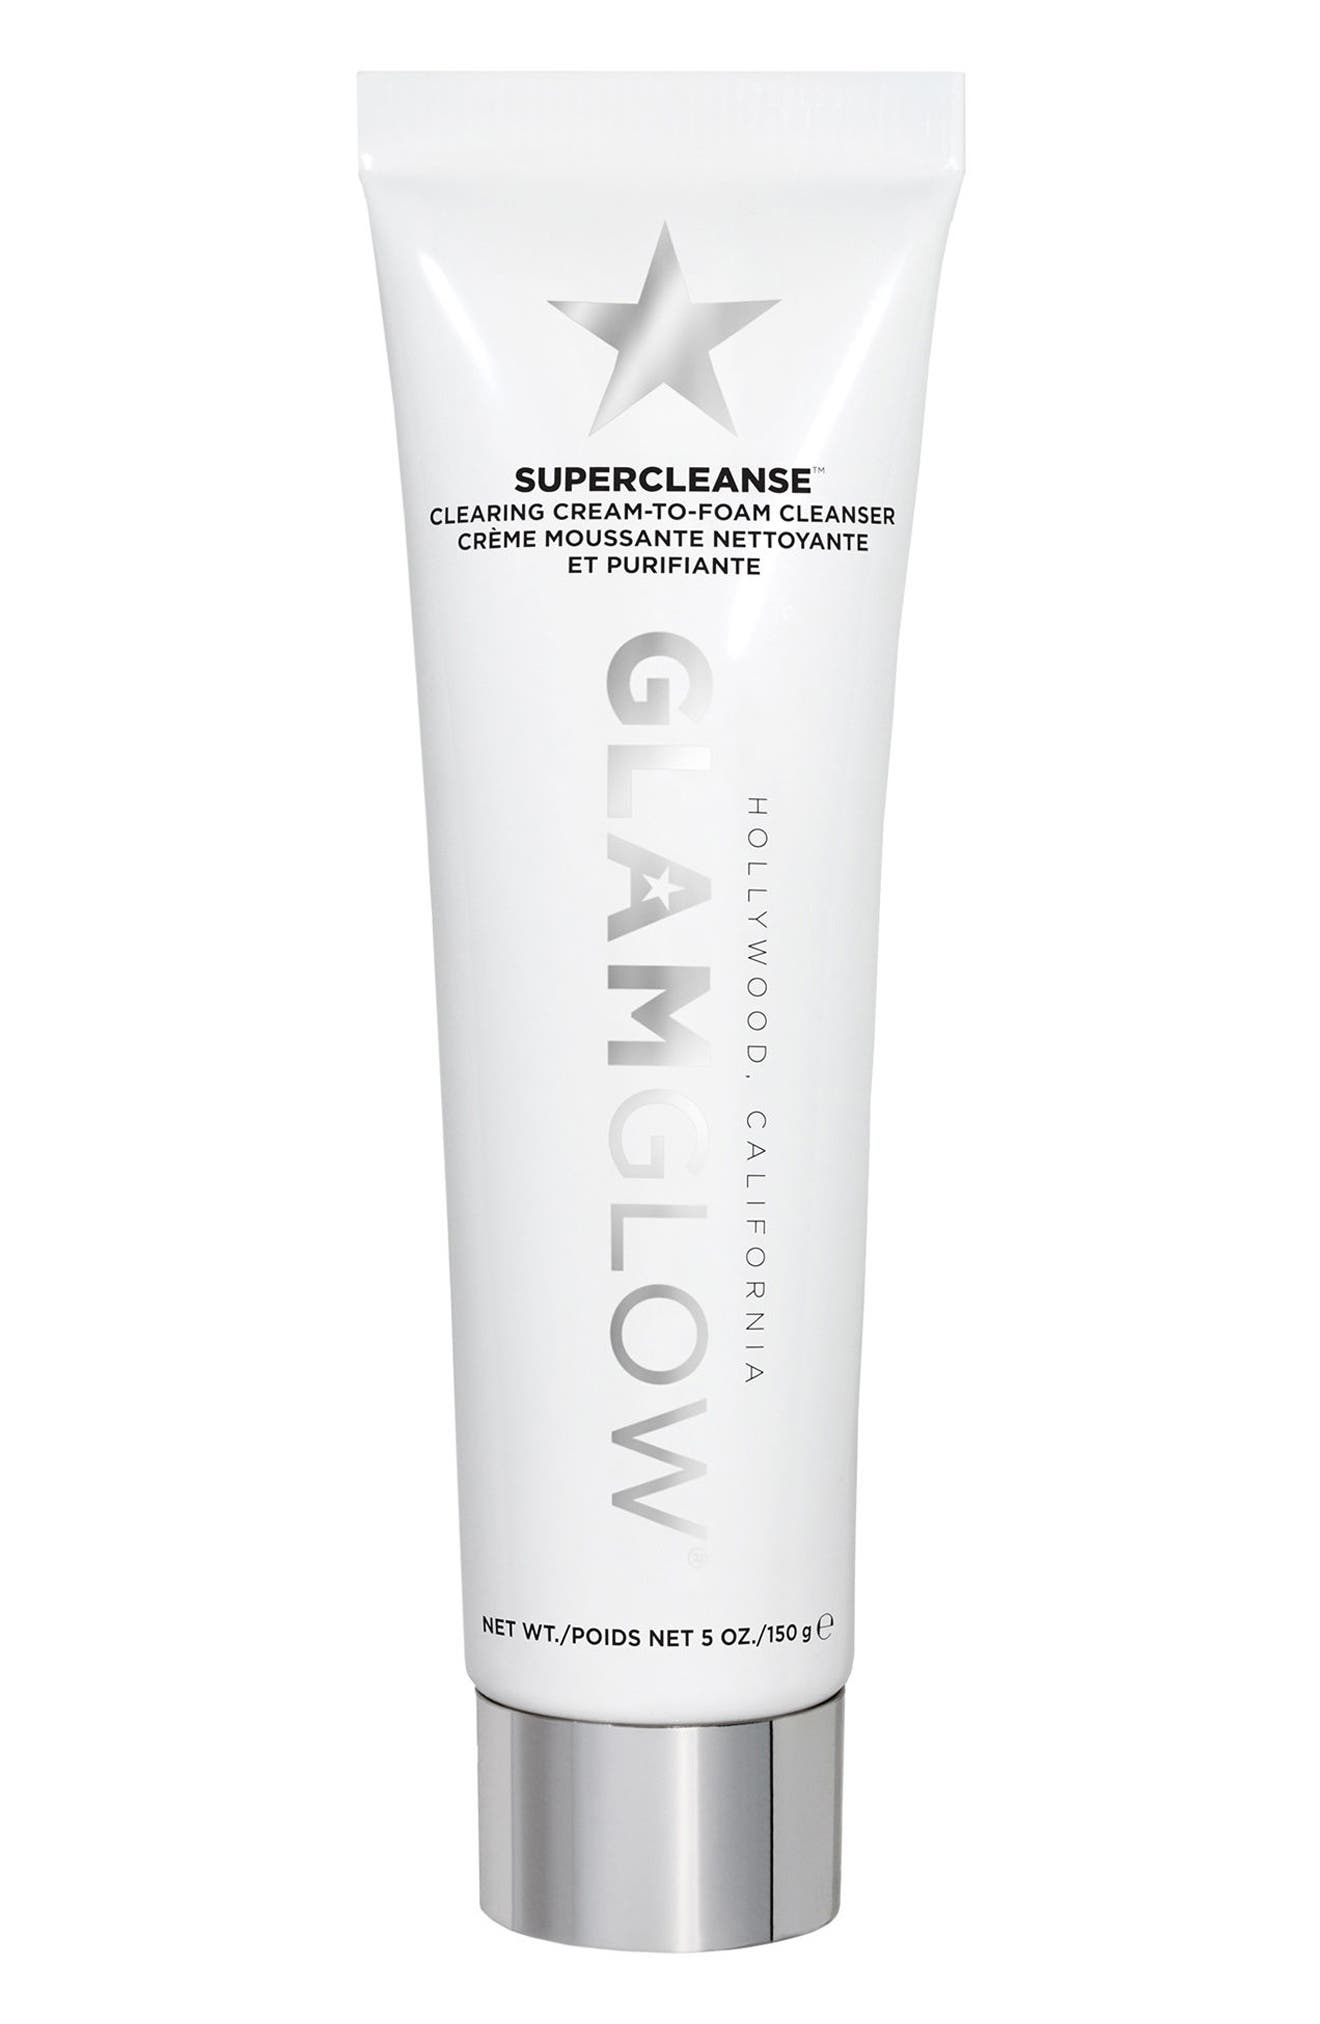 GLAMGLOW® SUPERCLEANSE™ Clearing Cream-to-Foam Cleanser